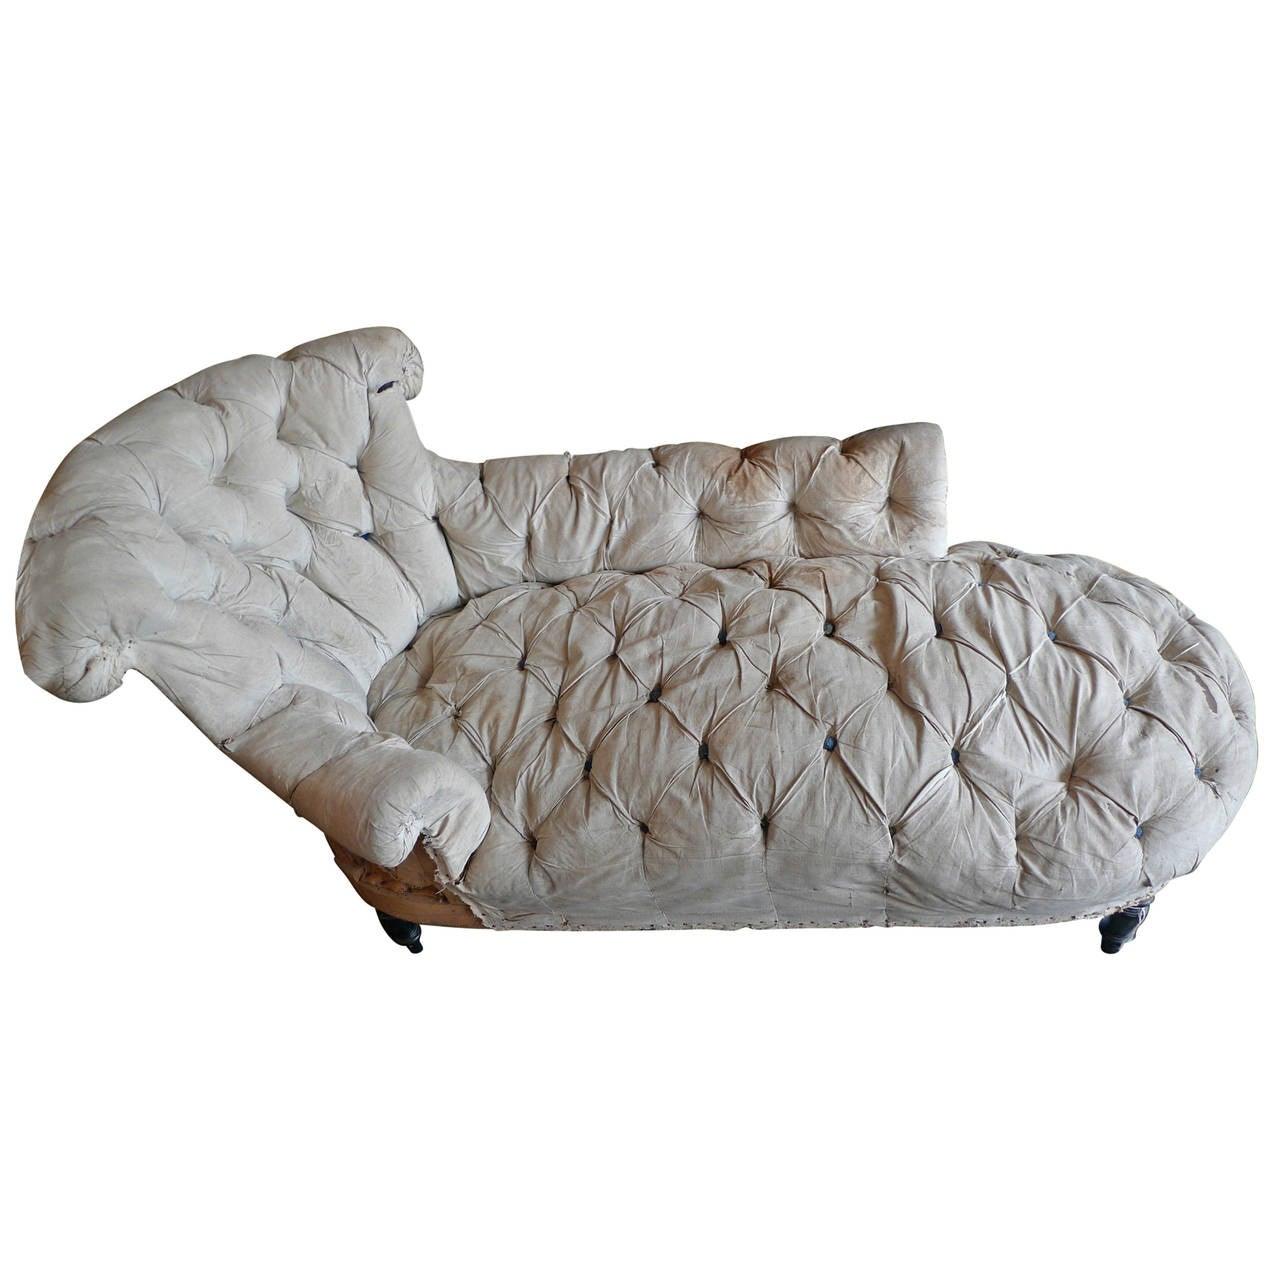 French 19th century napoleon iii chaise longue at 1stdibs for Chaise longue france